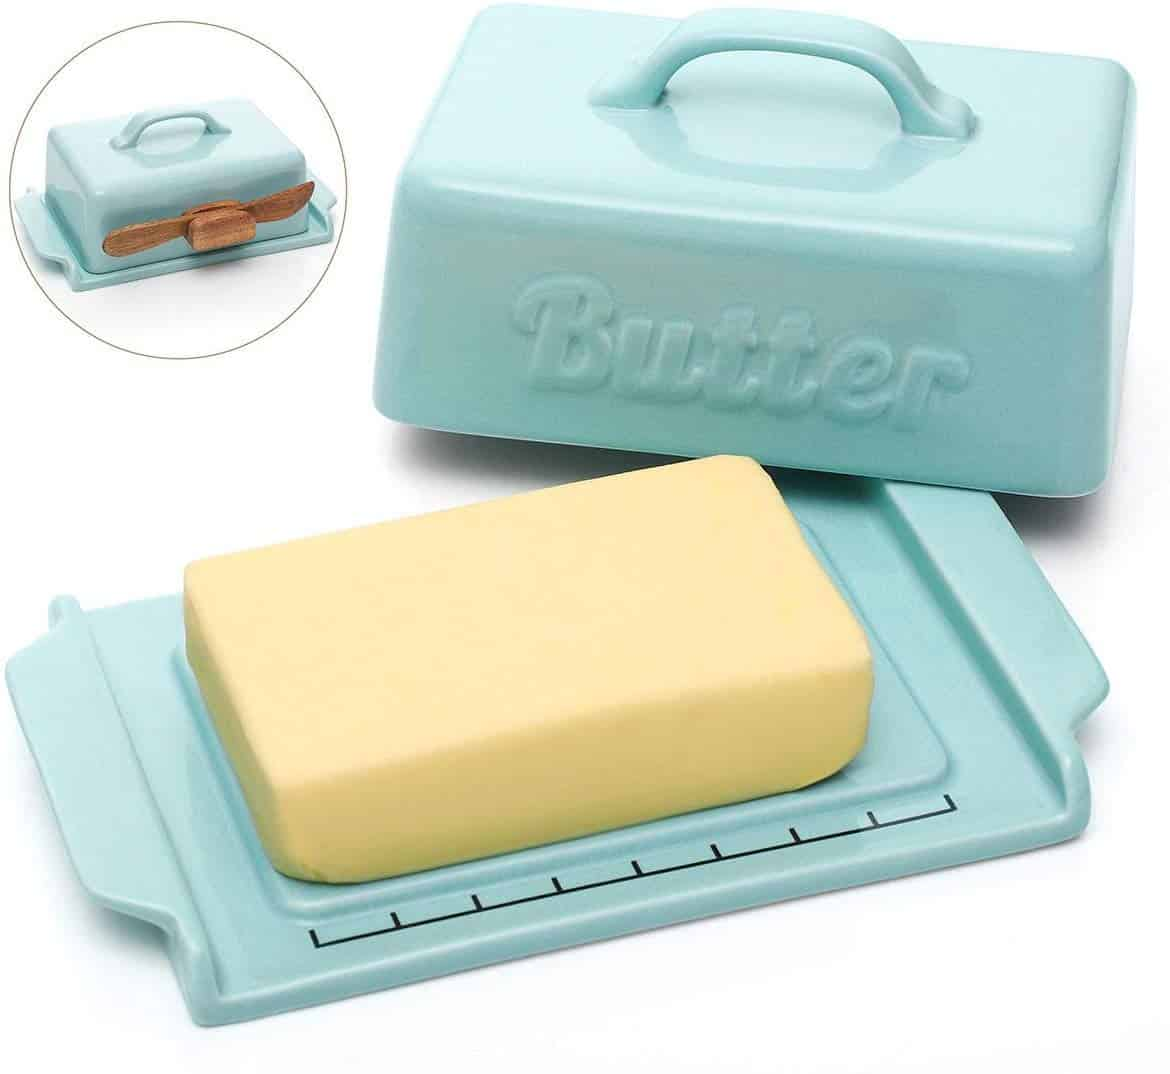 butter-dish-knife